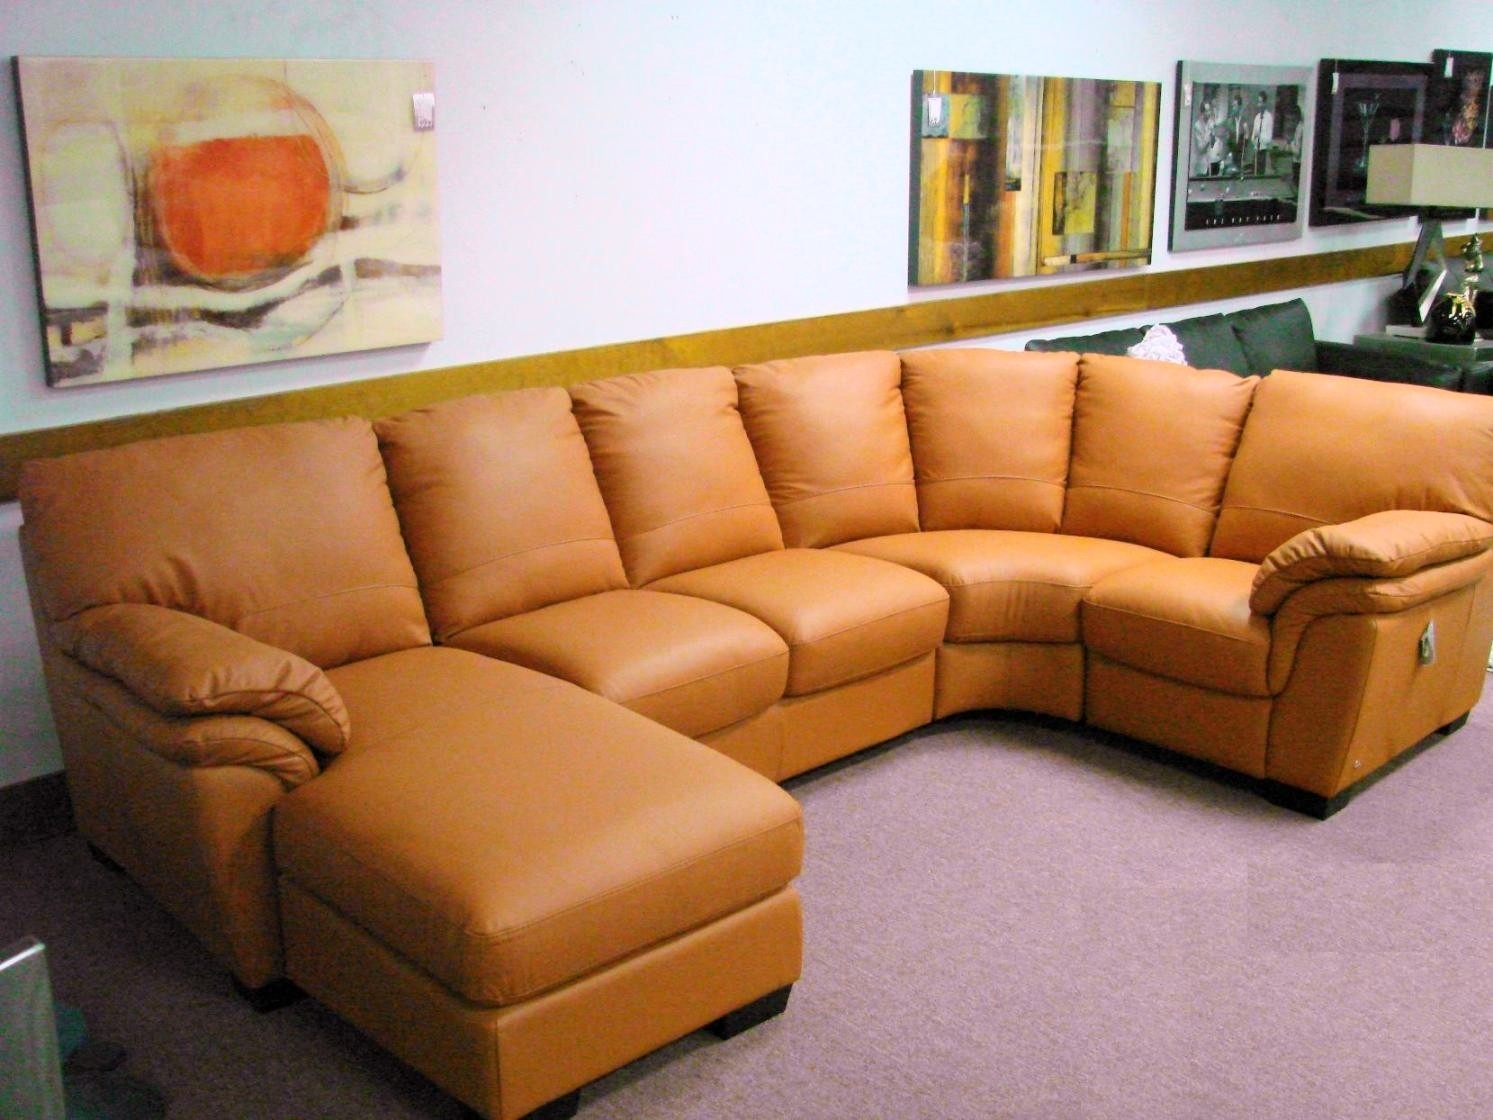 Sofa : Caramel Colored Leather Sofa Camel Color Sectional Sofacarmel inside Camel Colored Sectional Sofas (Image 10 of 10)